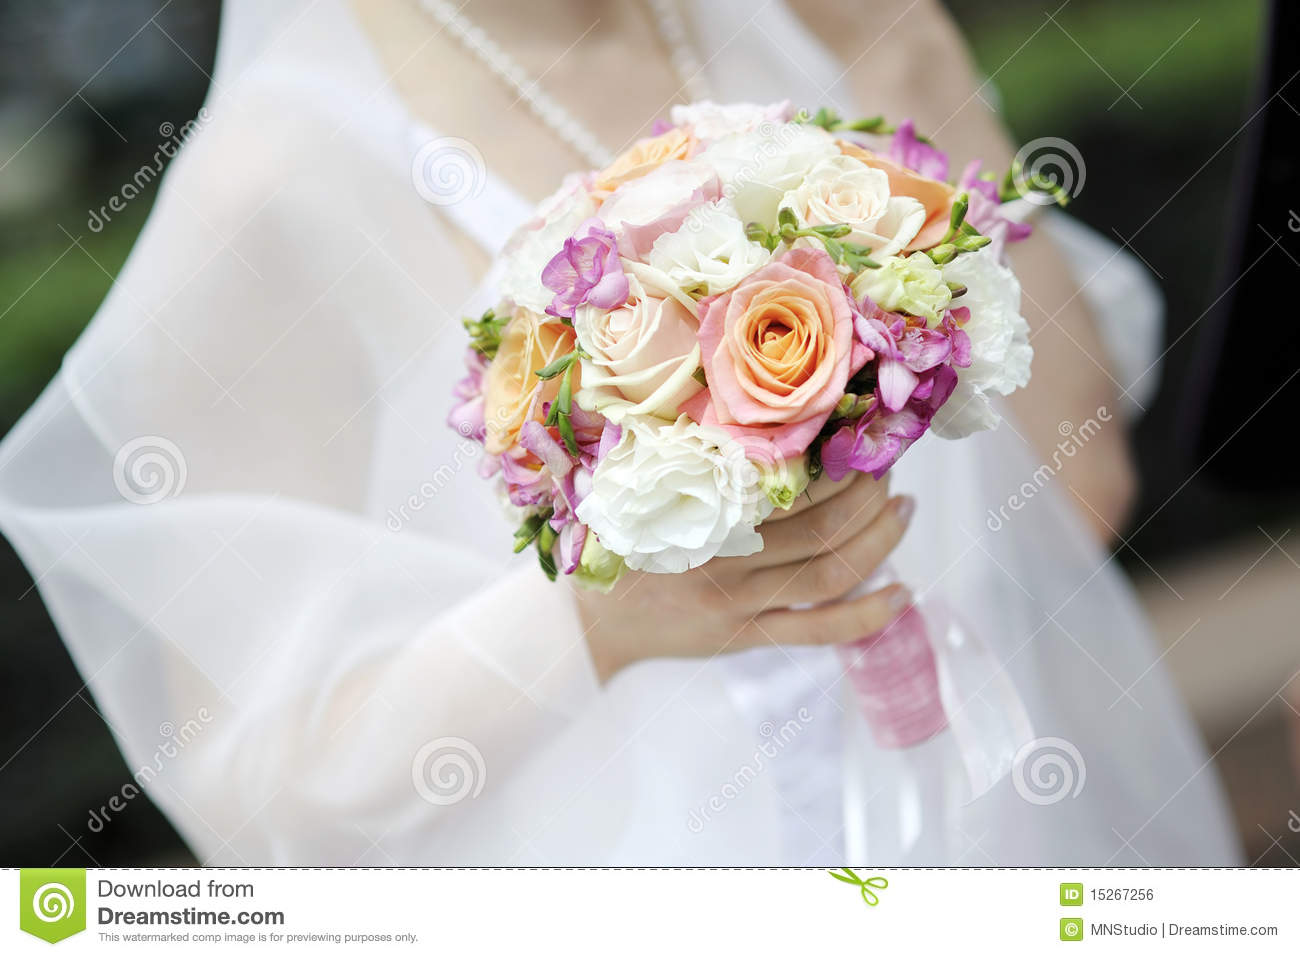 Bride holding beautiful wedding flowers bouquet stock photo image download bride holding beautiful wedding flowers bouquet stock photo image of girl happy izmirmasajfo